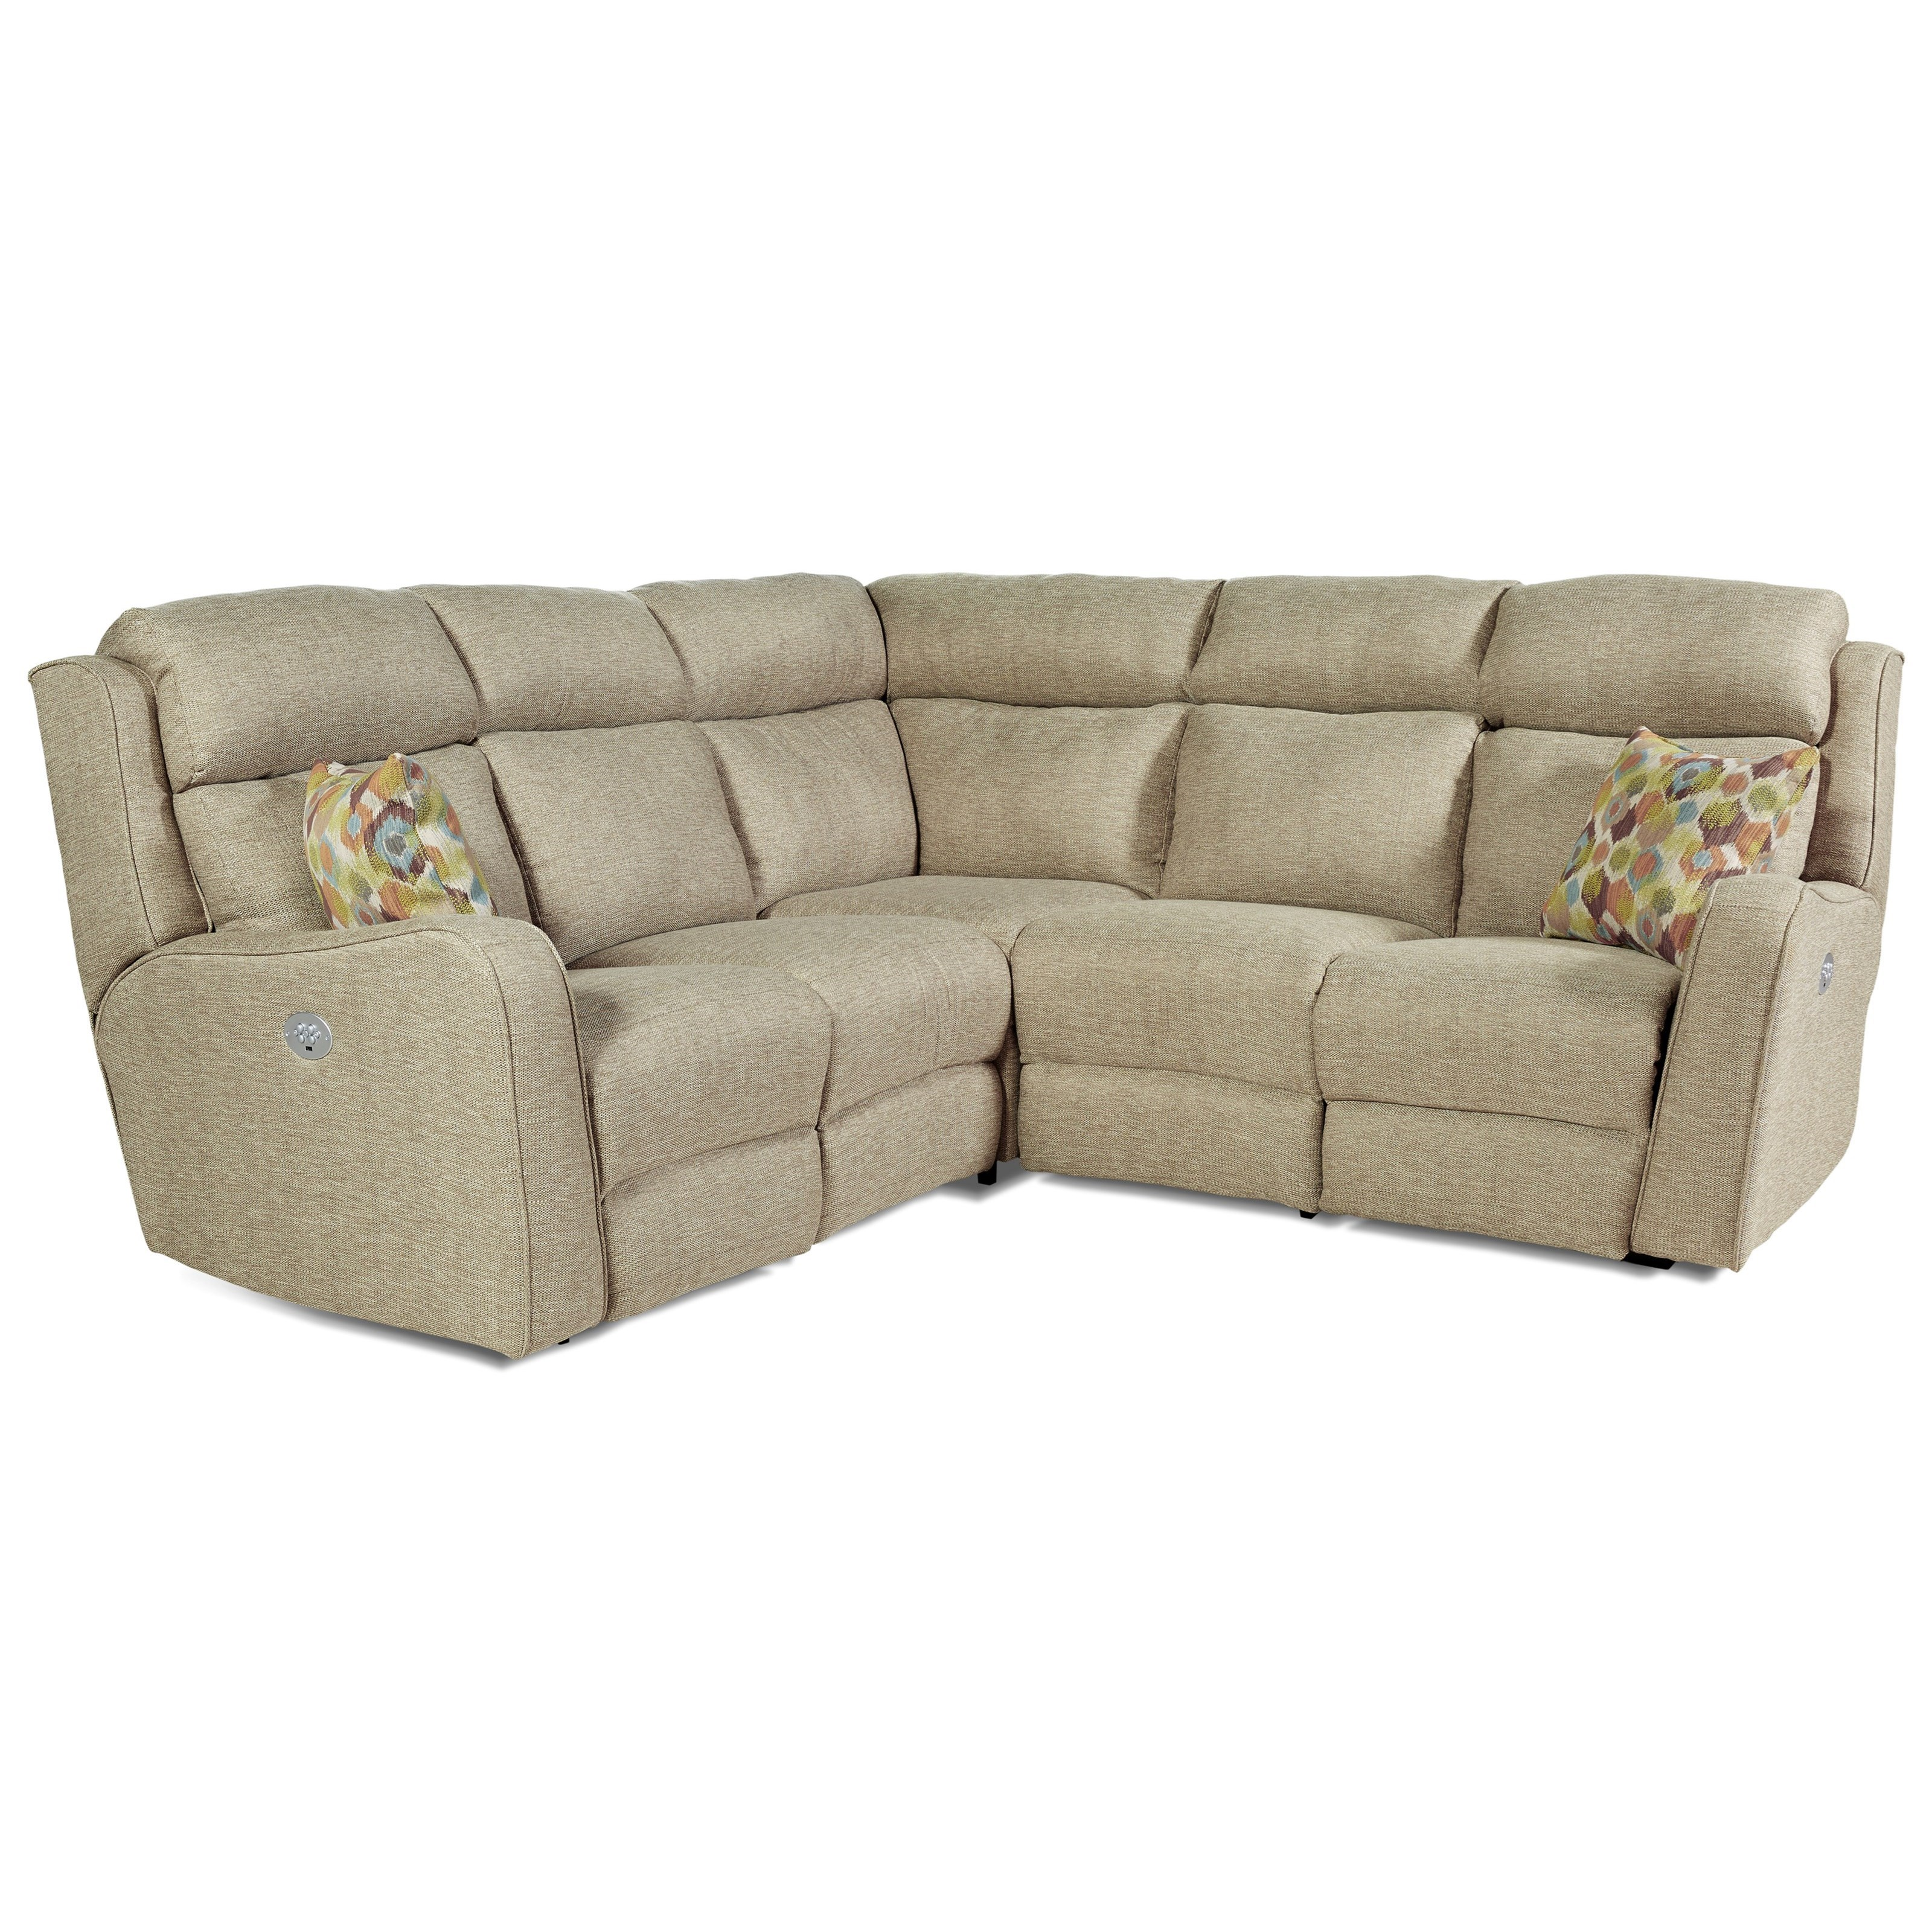 Power Reclining Sectional Sofa with 4 Seats by Southern Motion